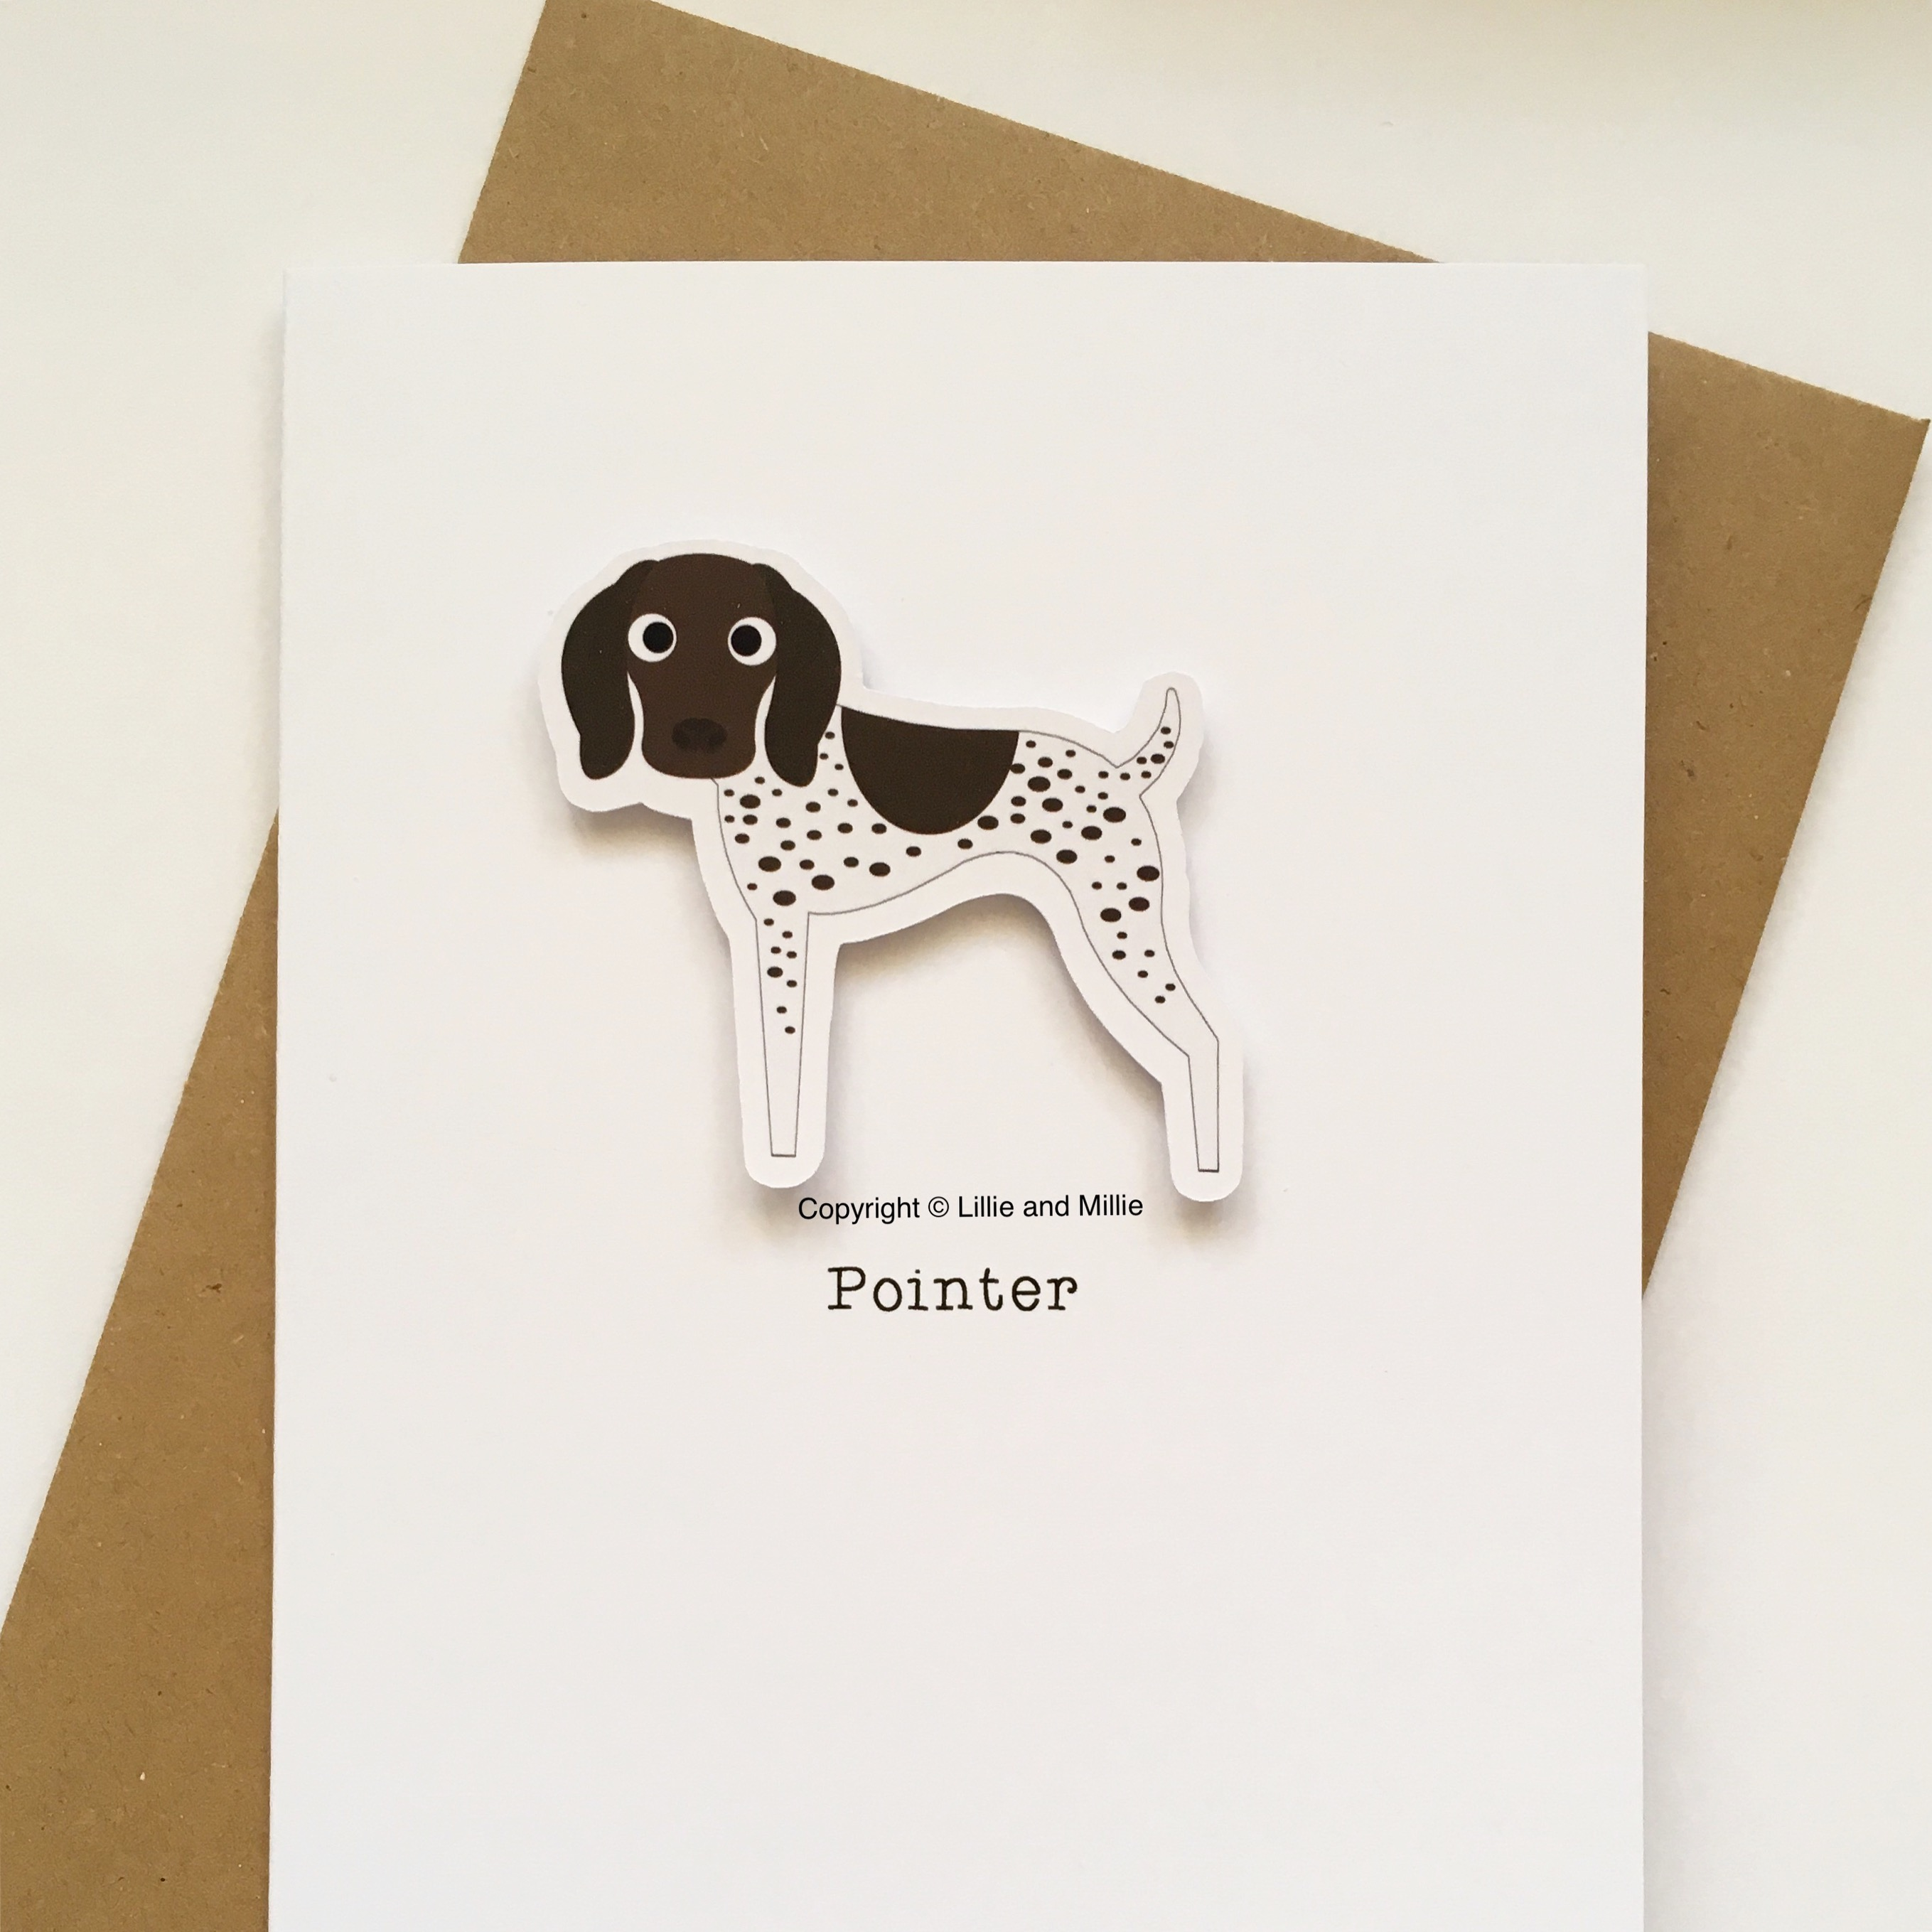 Cute and Cuddly Liver and White Heavy Ticking Pointer Card